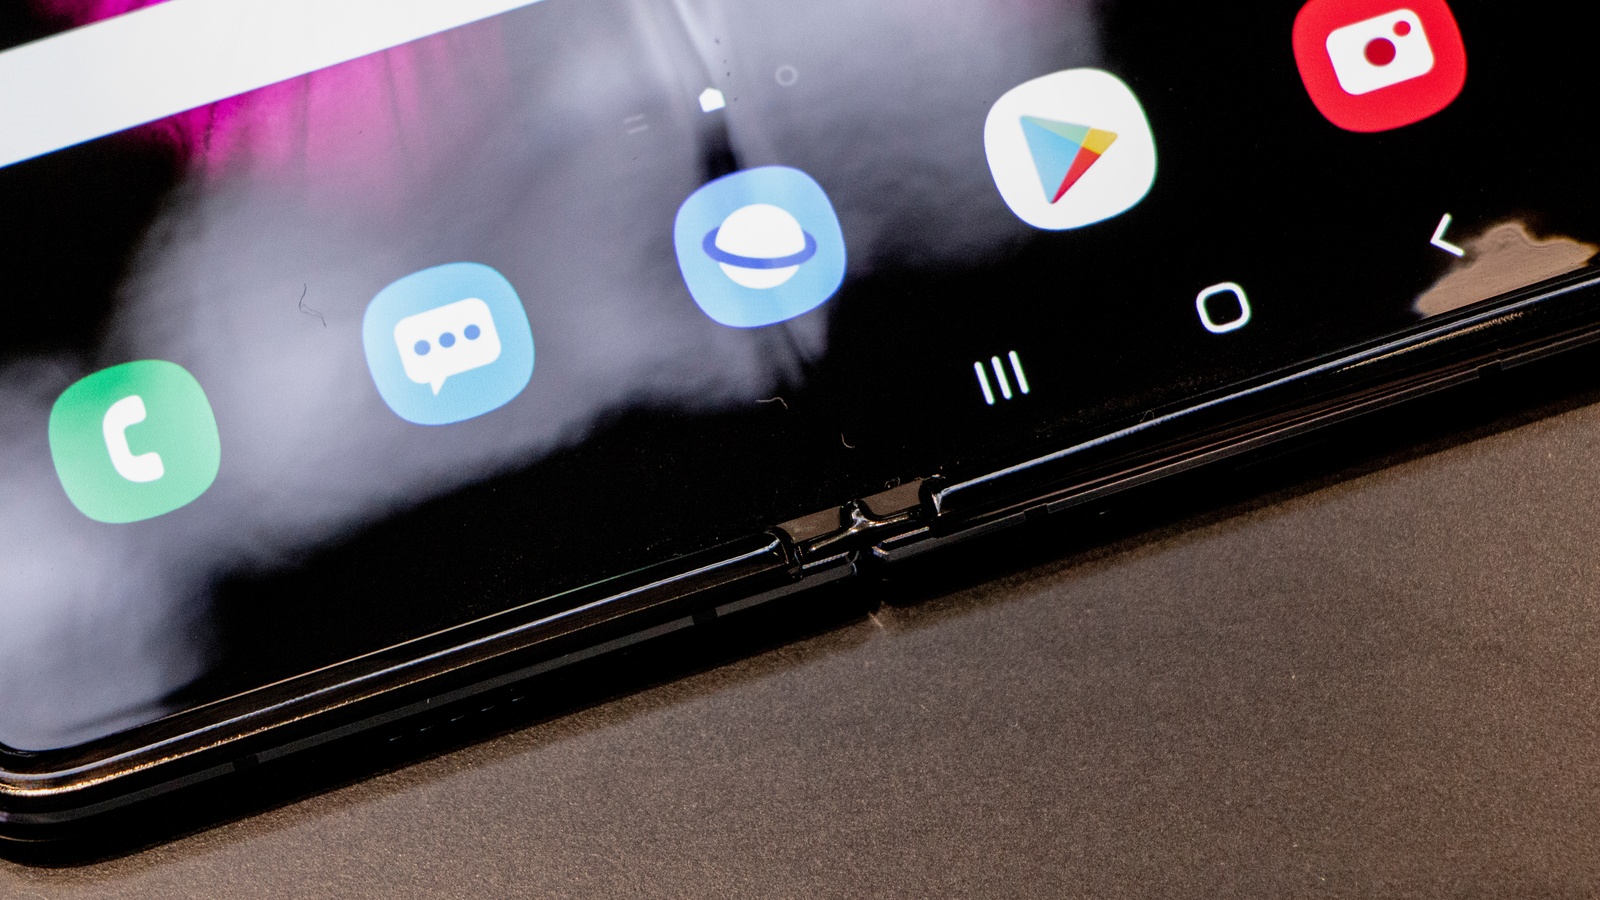 Illustration for article titled Can You Spot the Upgrades on the New Samsung Galaxy Fold?